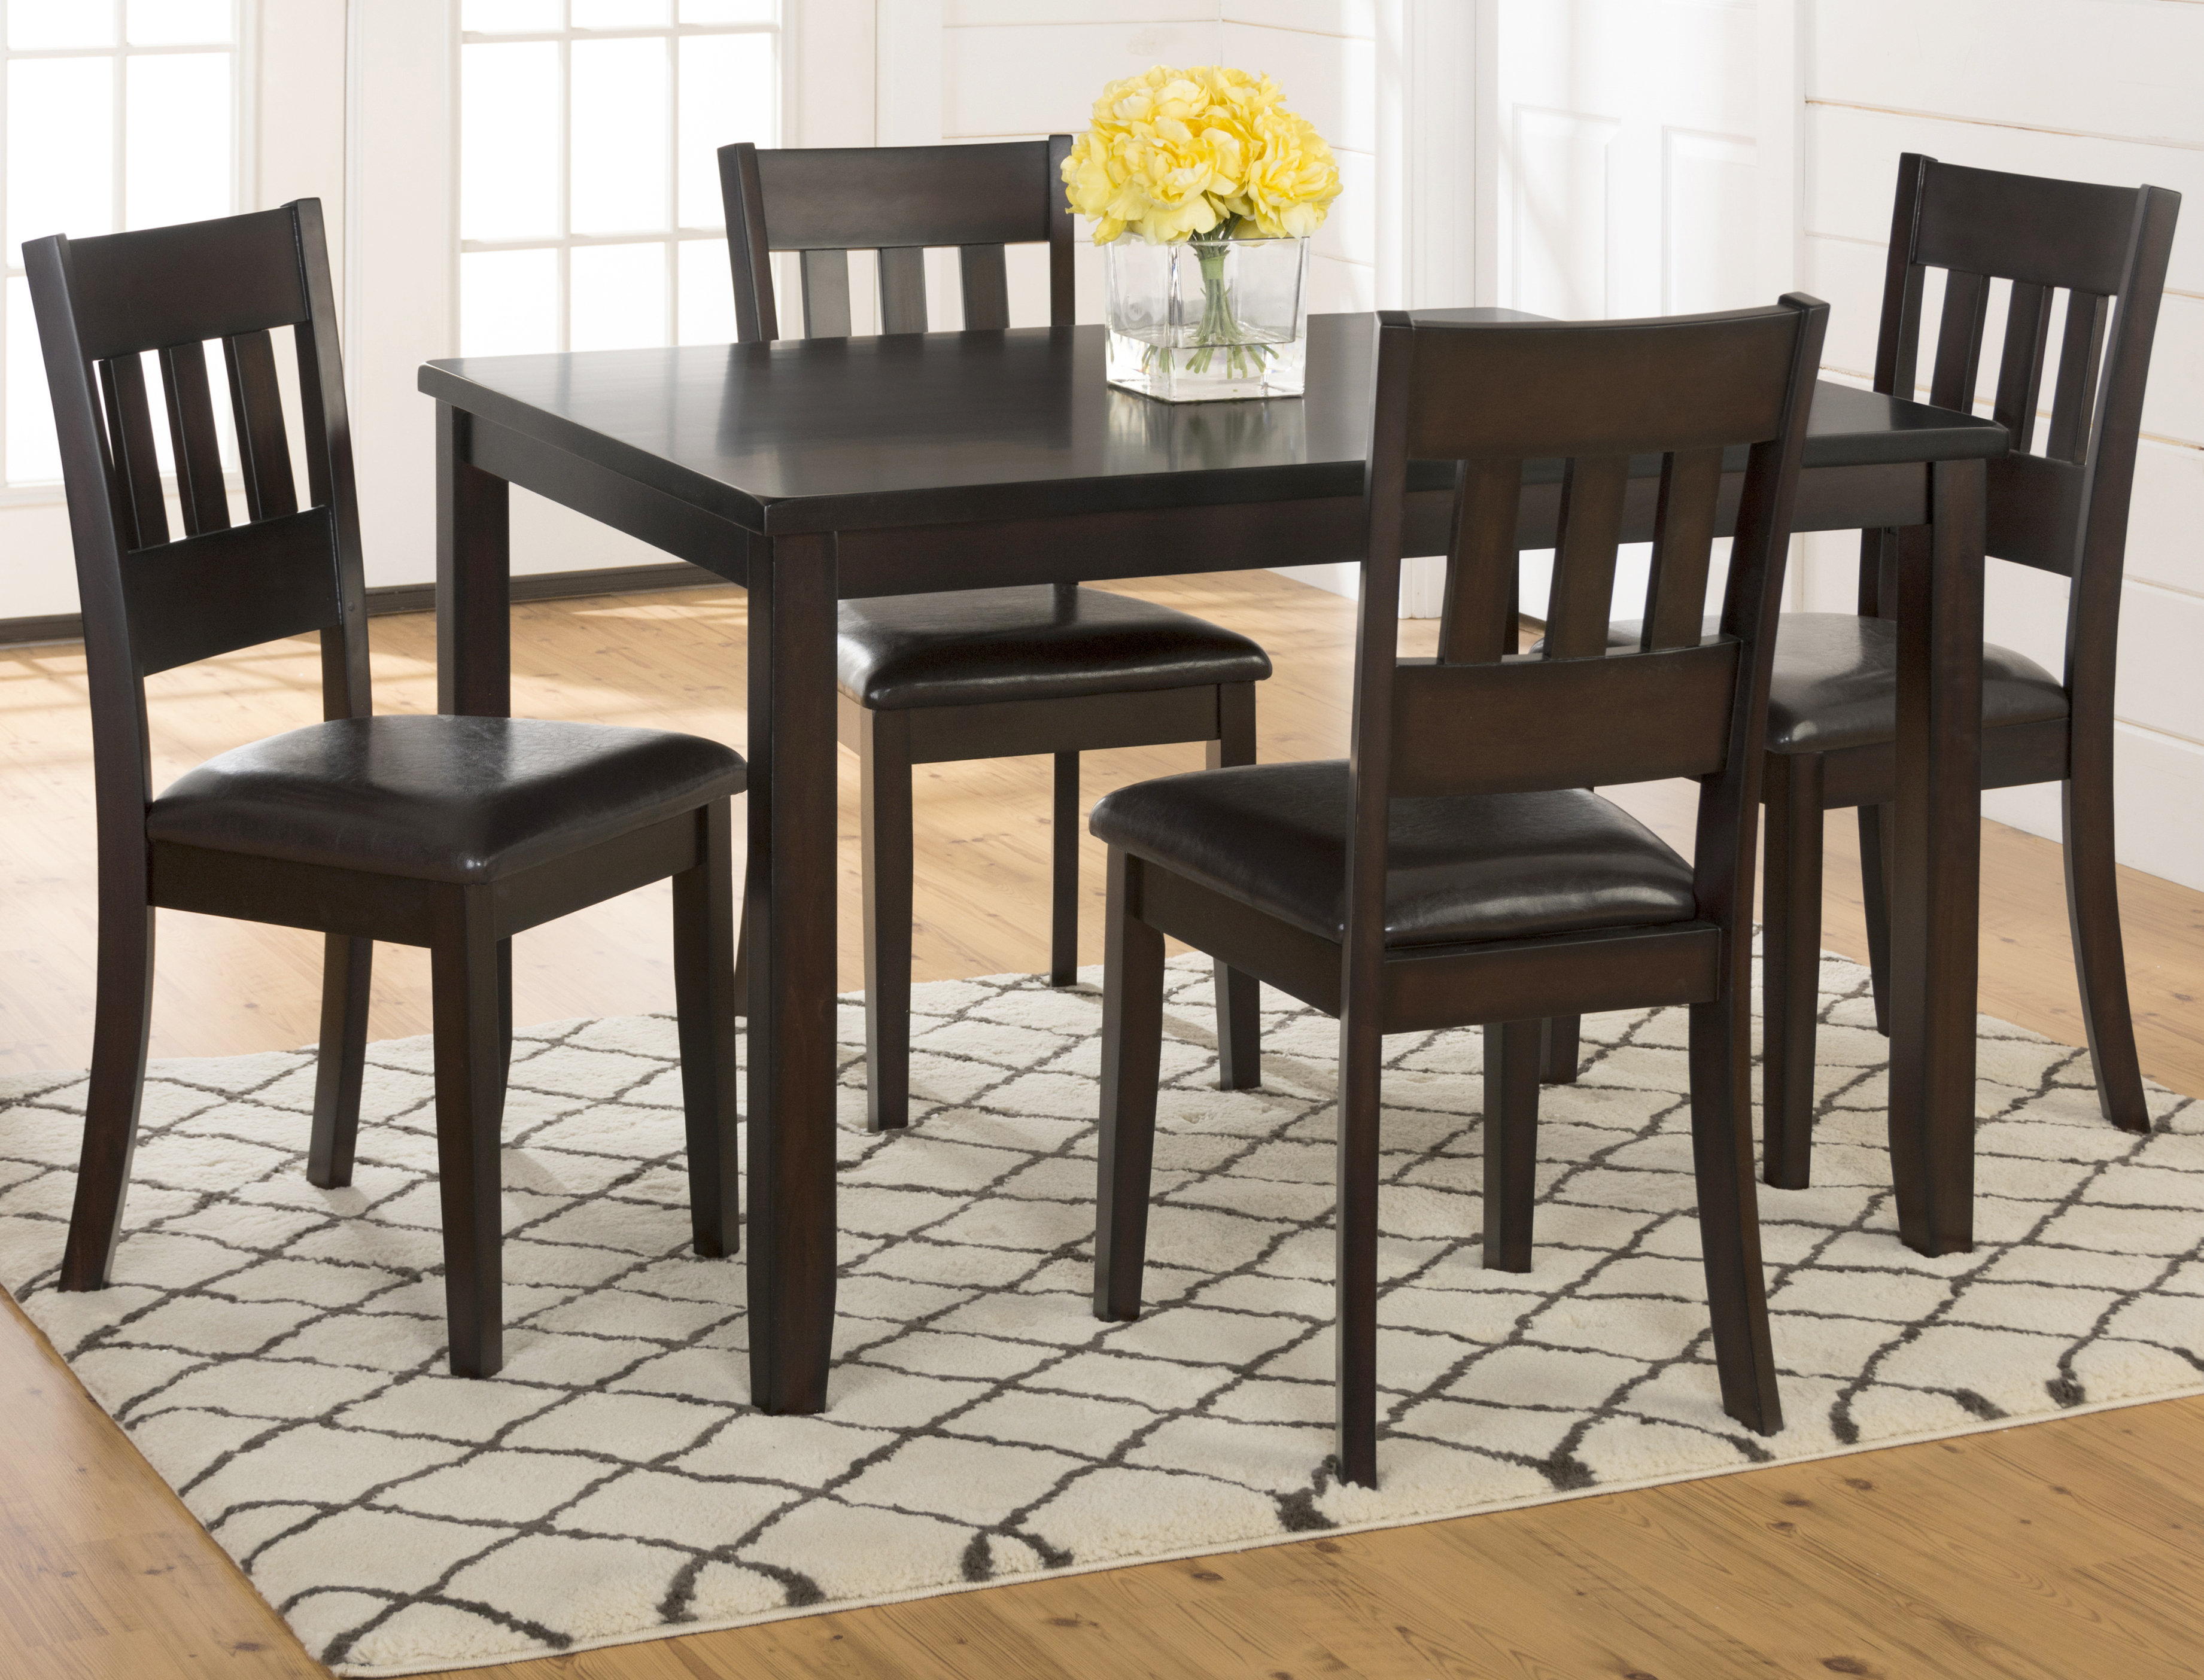 Adan 5 Piece Solid Wood Dining Set With Best And Newest Adan 5 Piece Solid Wood Dining Sets (Set Of 5) (View 2 of 20)